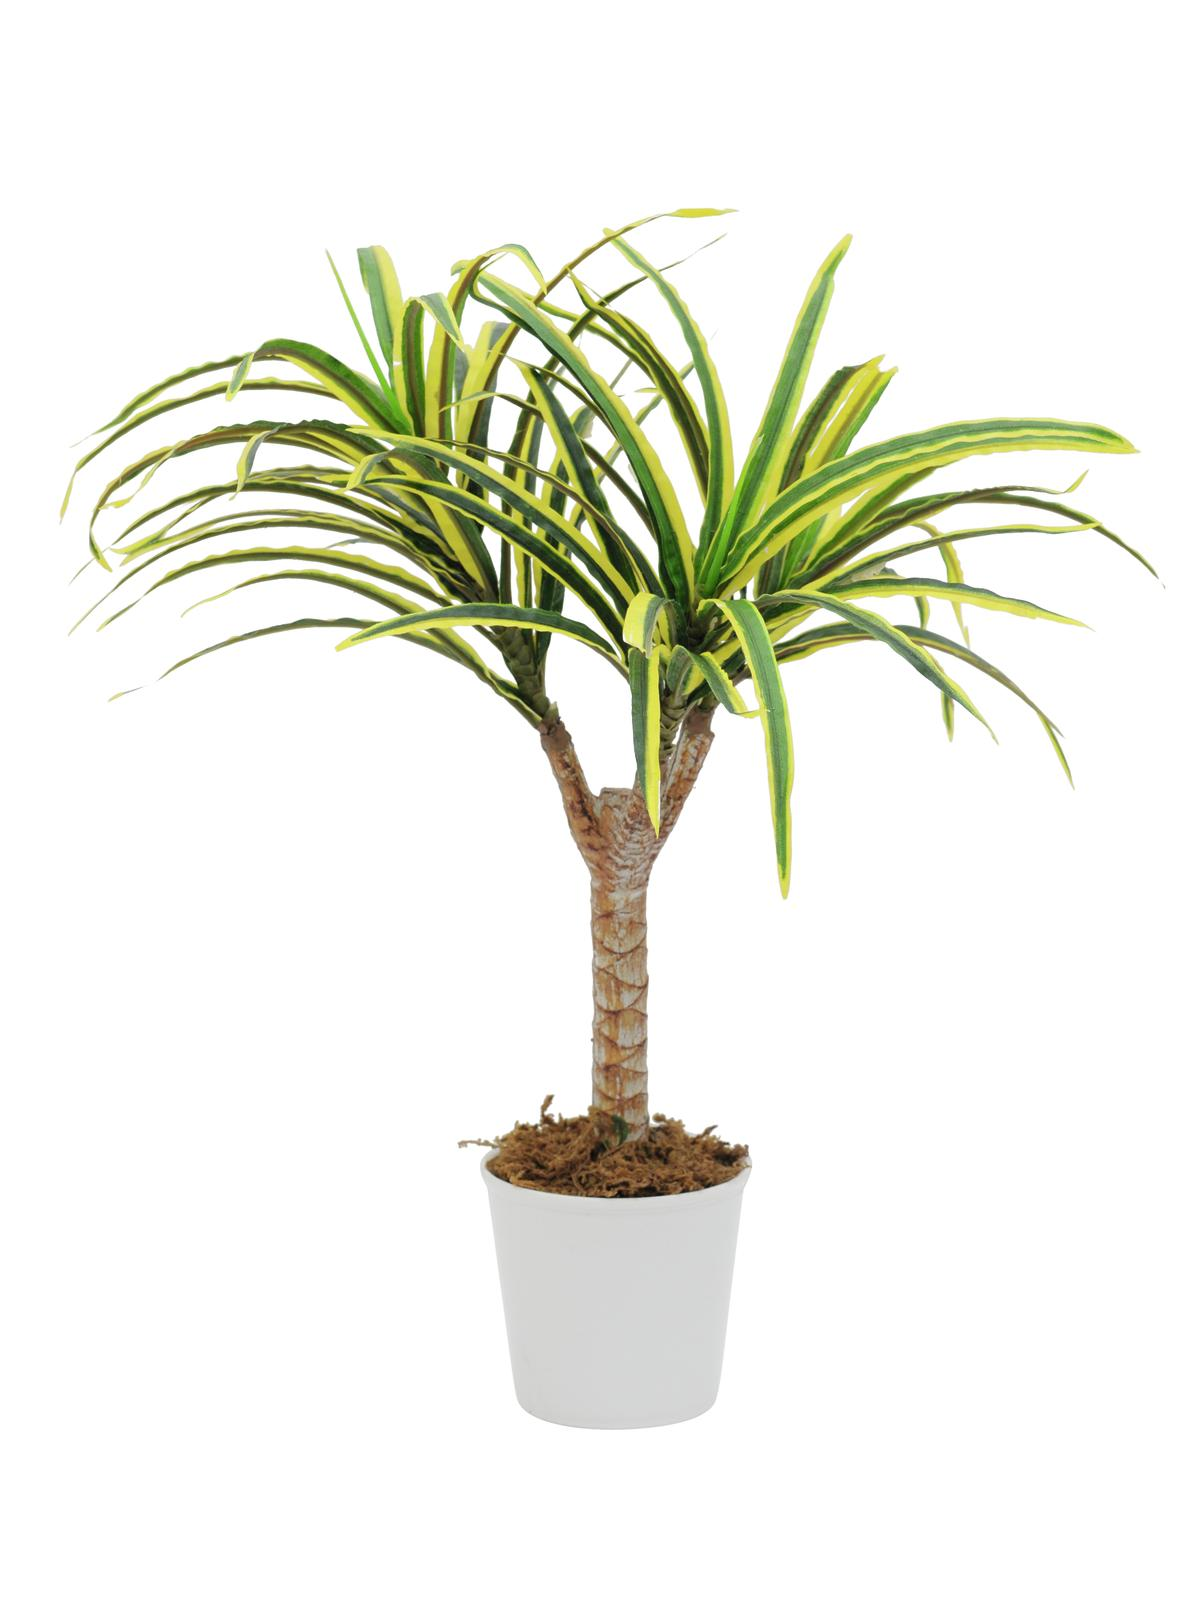 EUROPALMS pianta artificiale Dracena giallo-verde, 50cm